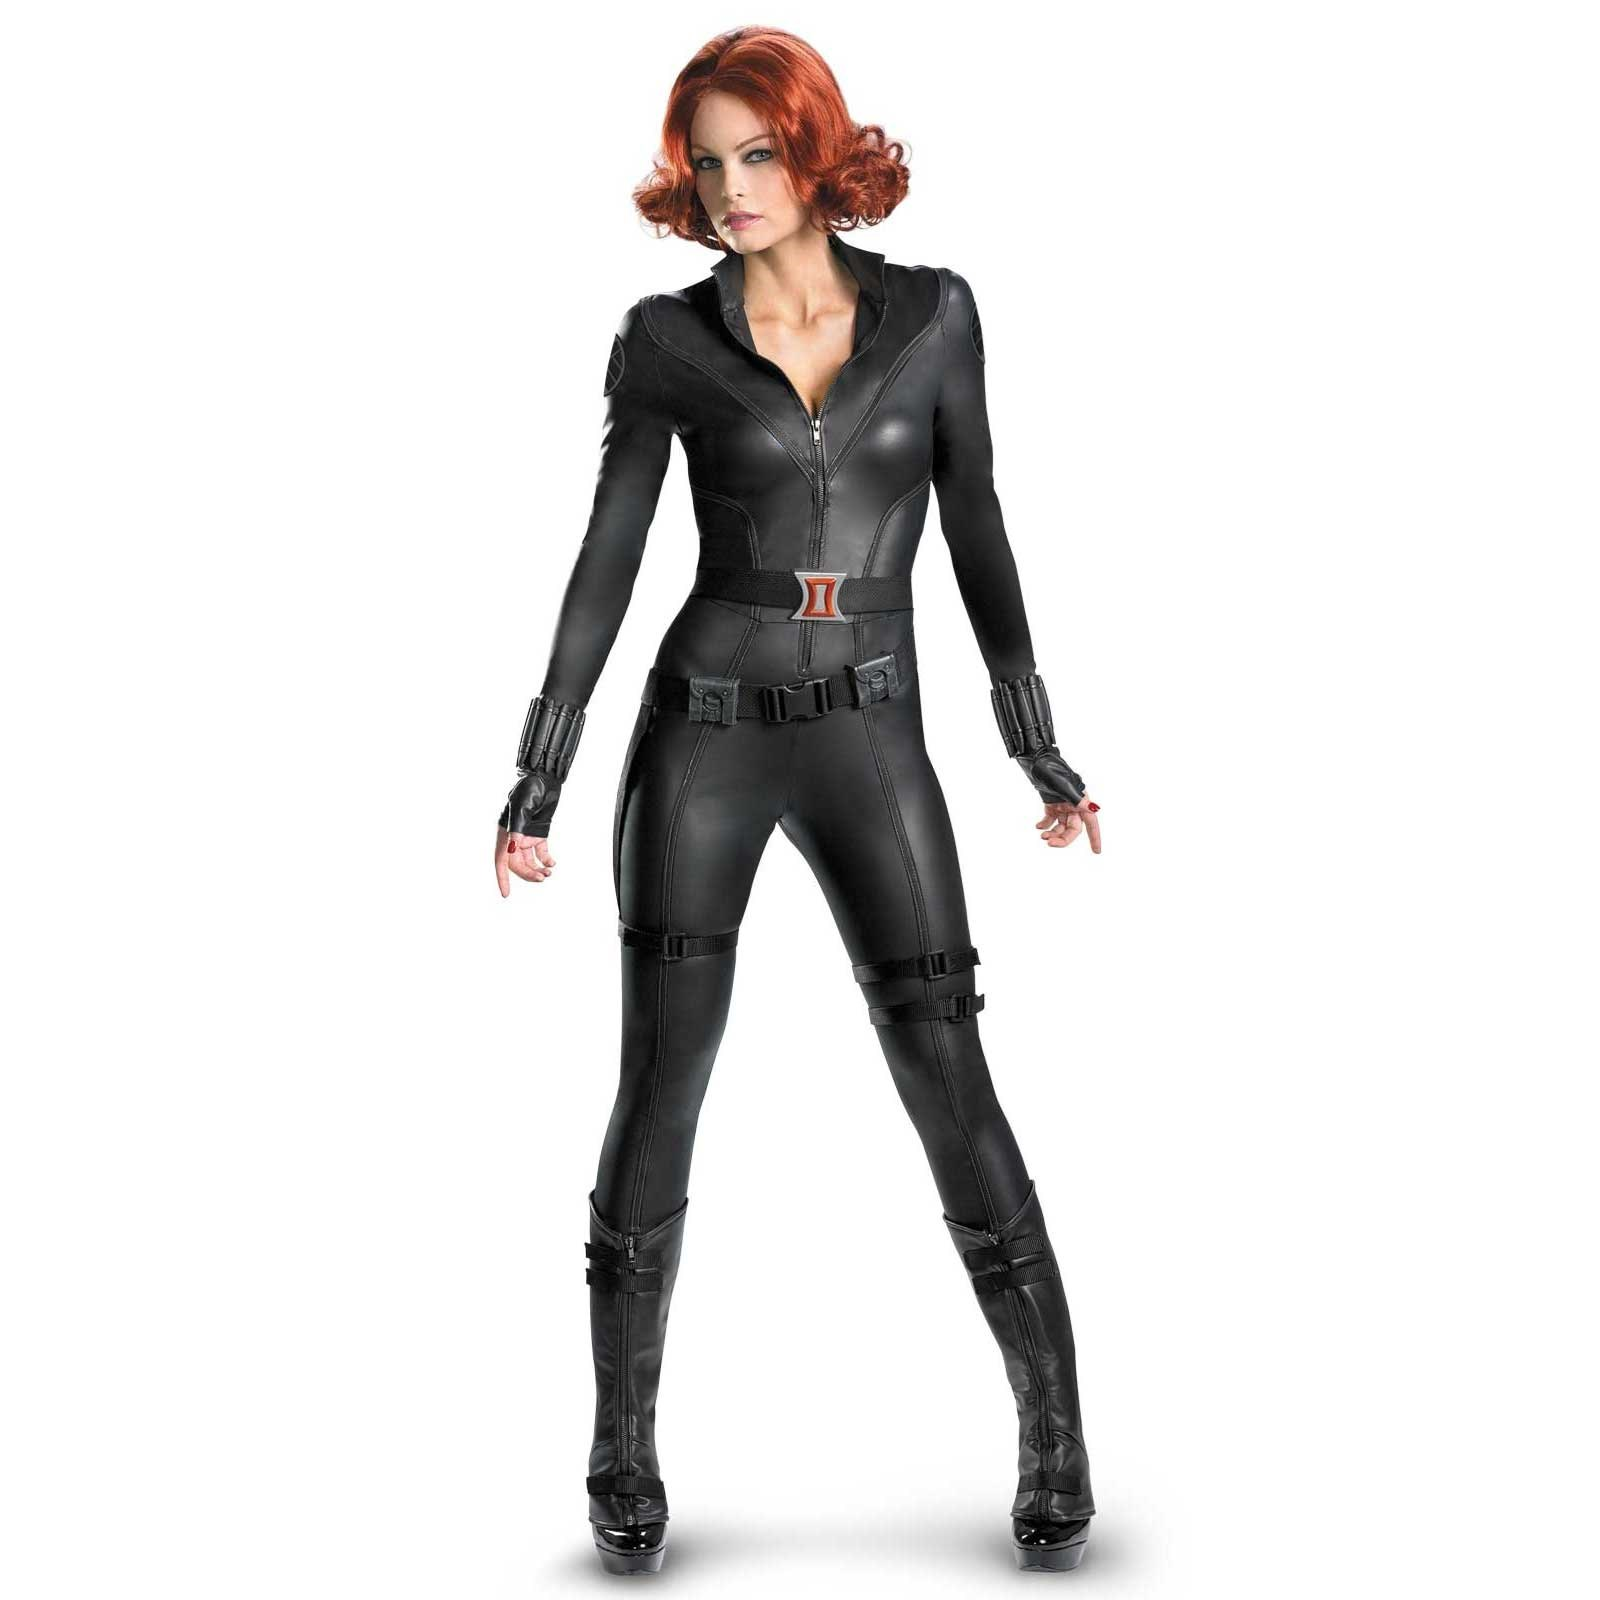 The Avengers Black Widow Elite Plus Adult Costume